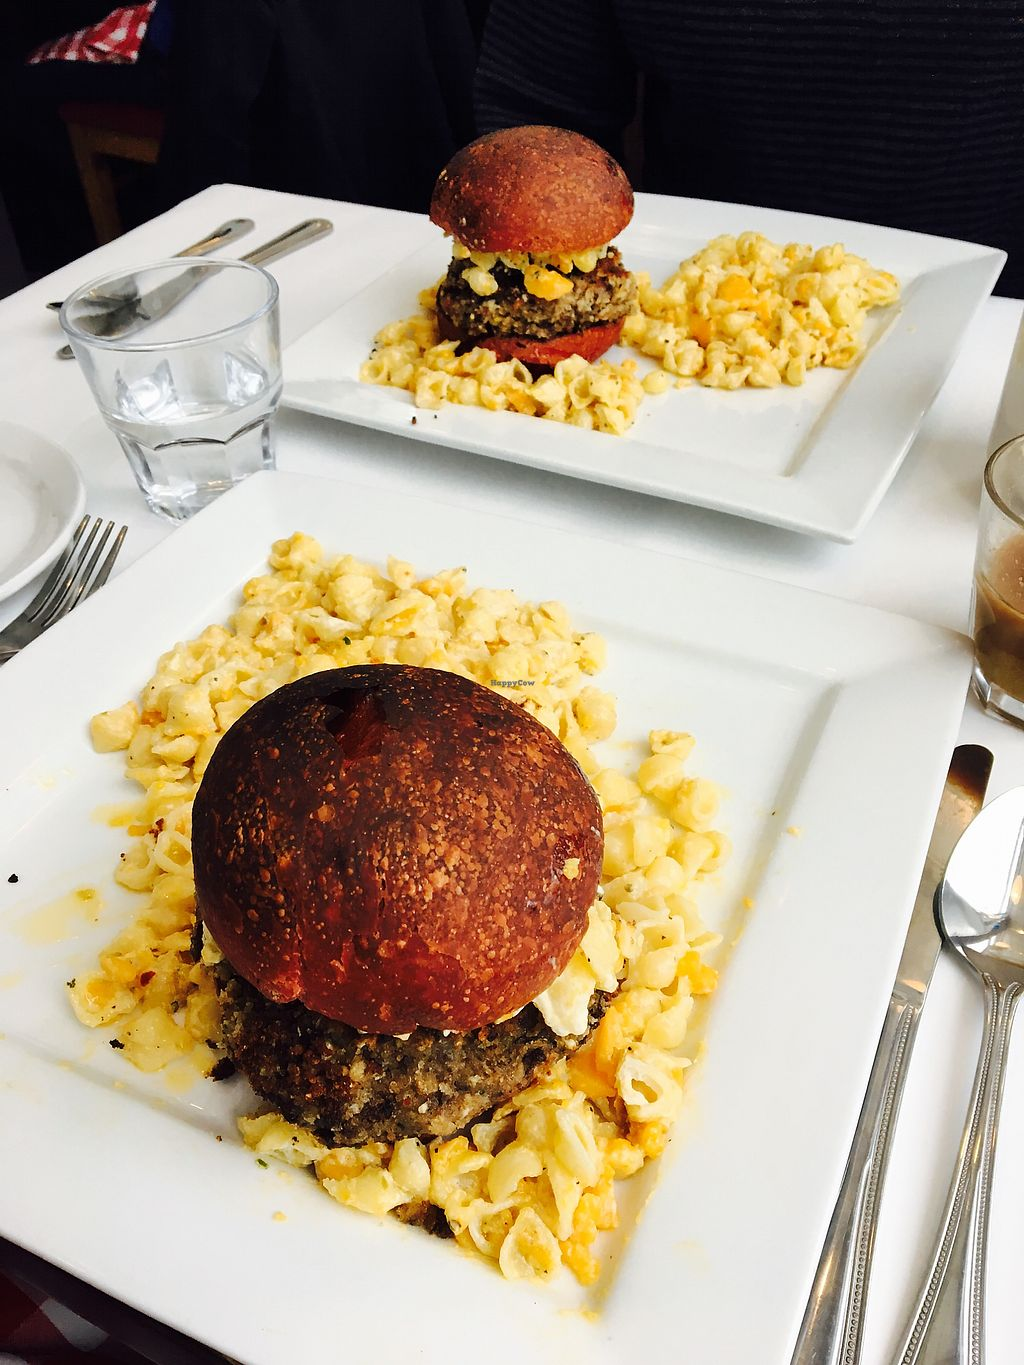 """Photo of Vegano  by <a href=""""/members/profile/AliceBernier"""">AliceBernier</a> <br/>Black beans burger with mac and cheese  <br/> August 14, 2017  - <a href='/contact/abuse/image/84140/292660'>Report</a>"""